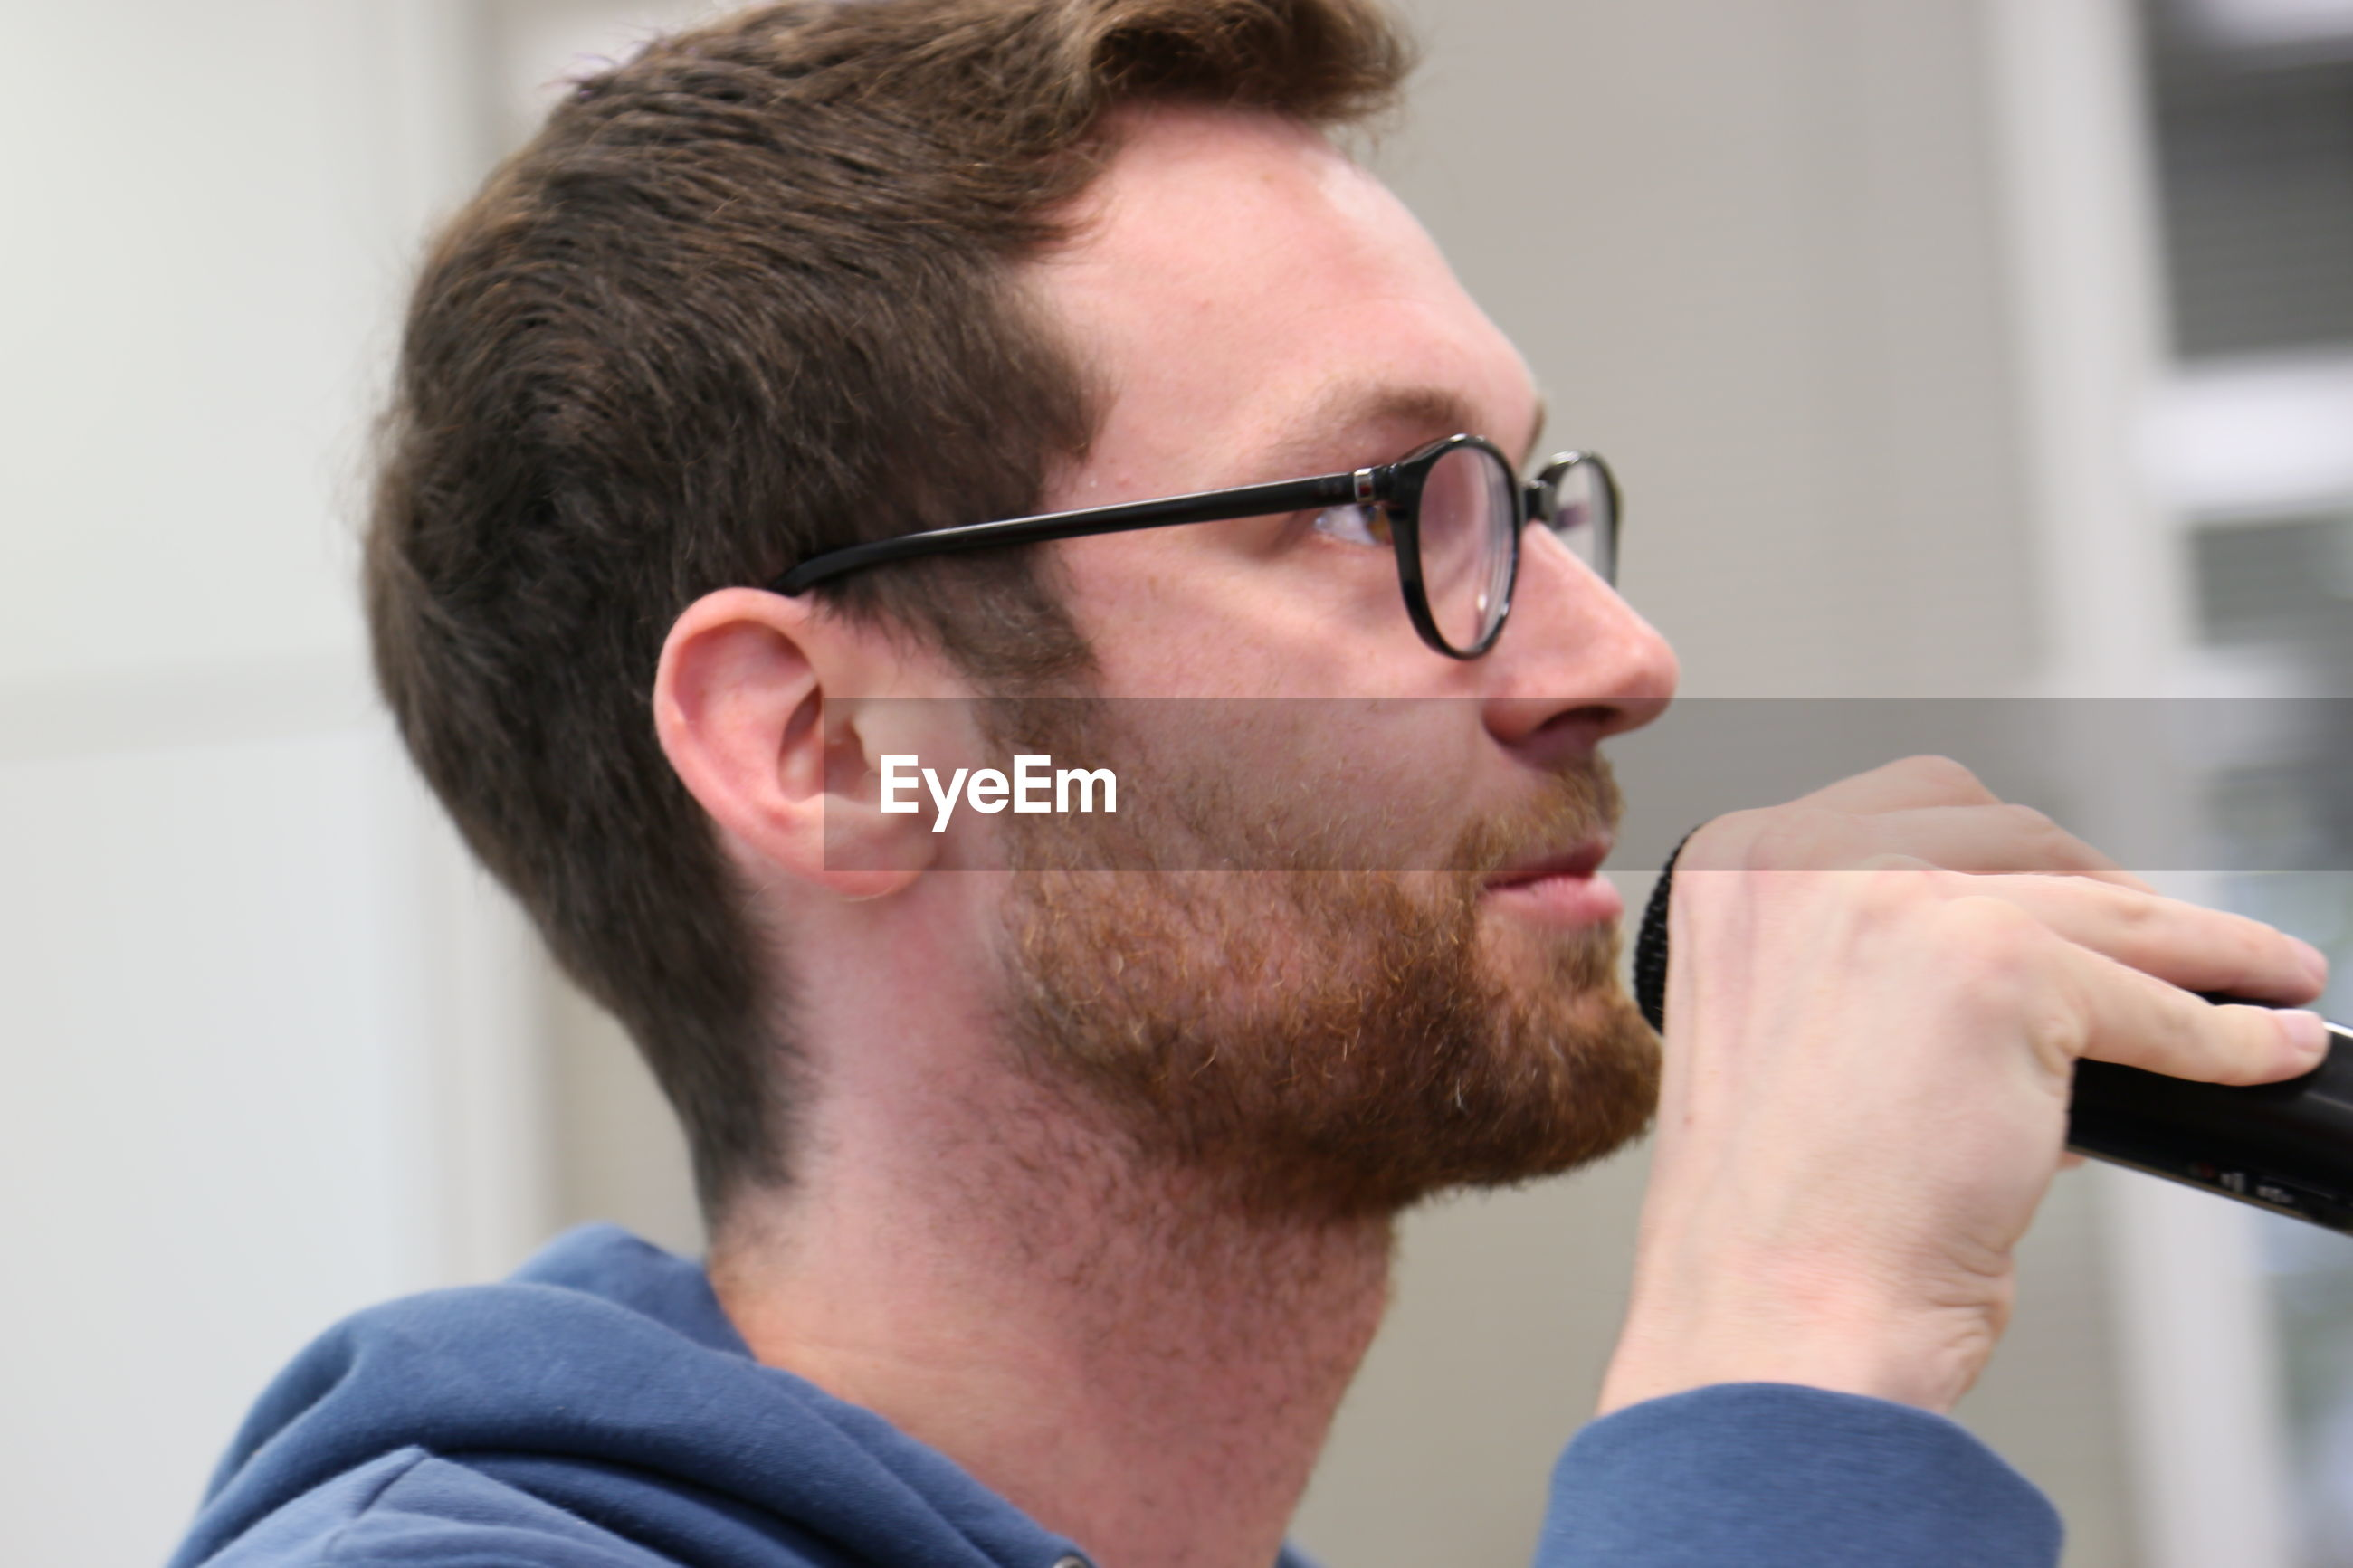 young adult, headshot, young men, person, lifestyles, portrait, front view, looking at camera, beard, focus on foreground, close-up, leisure activity, indoors, head and shoulders, serious, mid adult, mid adult men, handsome